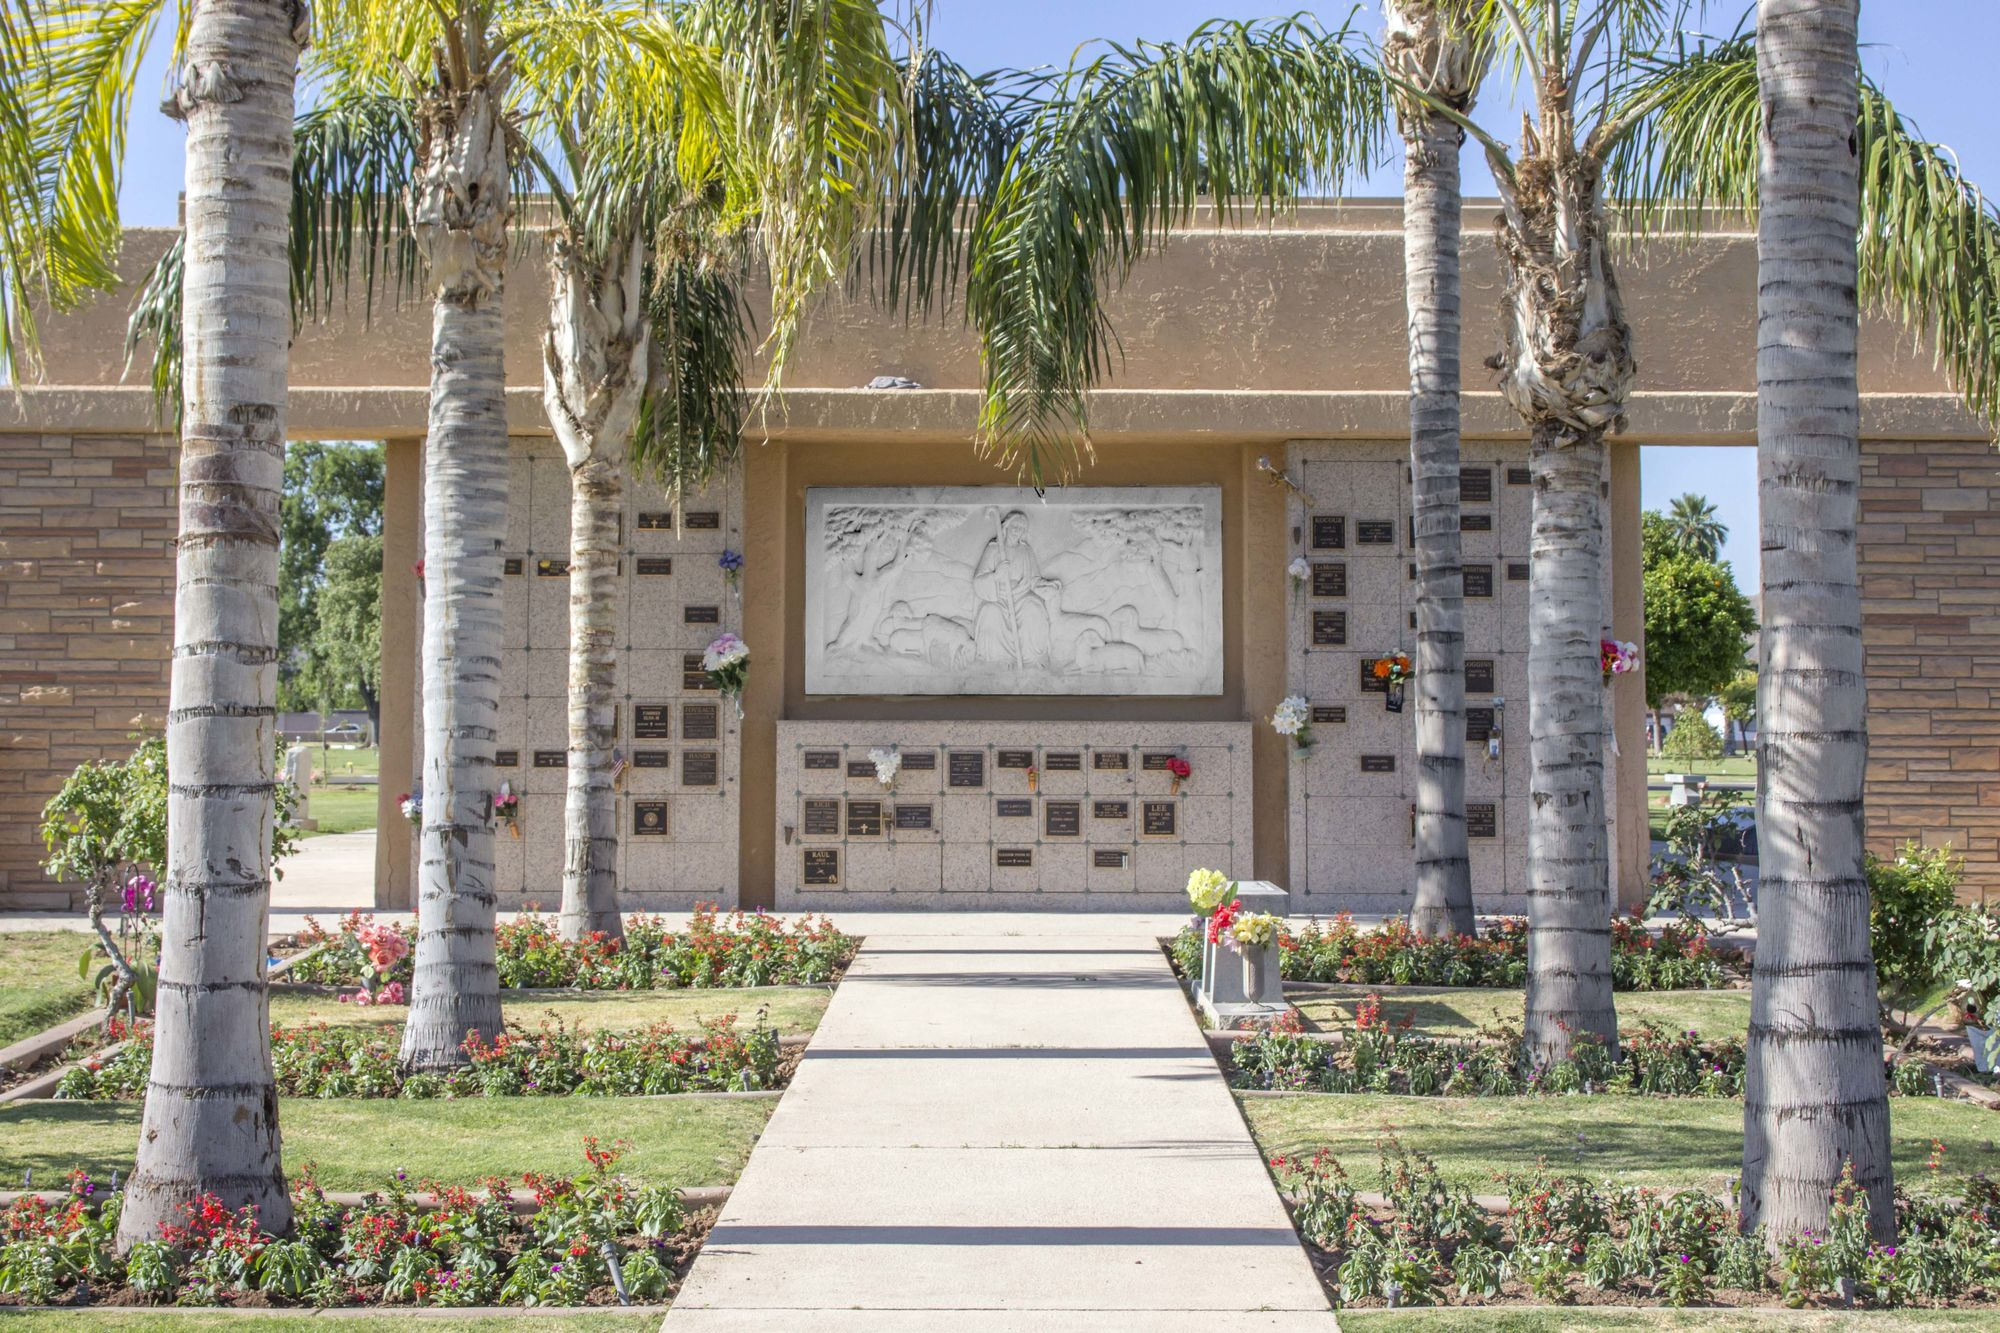 Walk of Palms and Good Shepherd Mausoleum at Resthaven / Carr-Tenney Mortuary & Memorial Gardens.